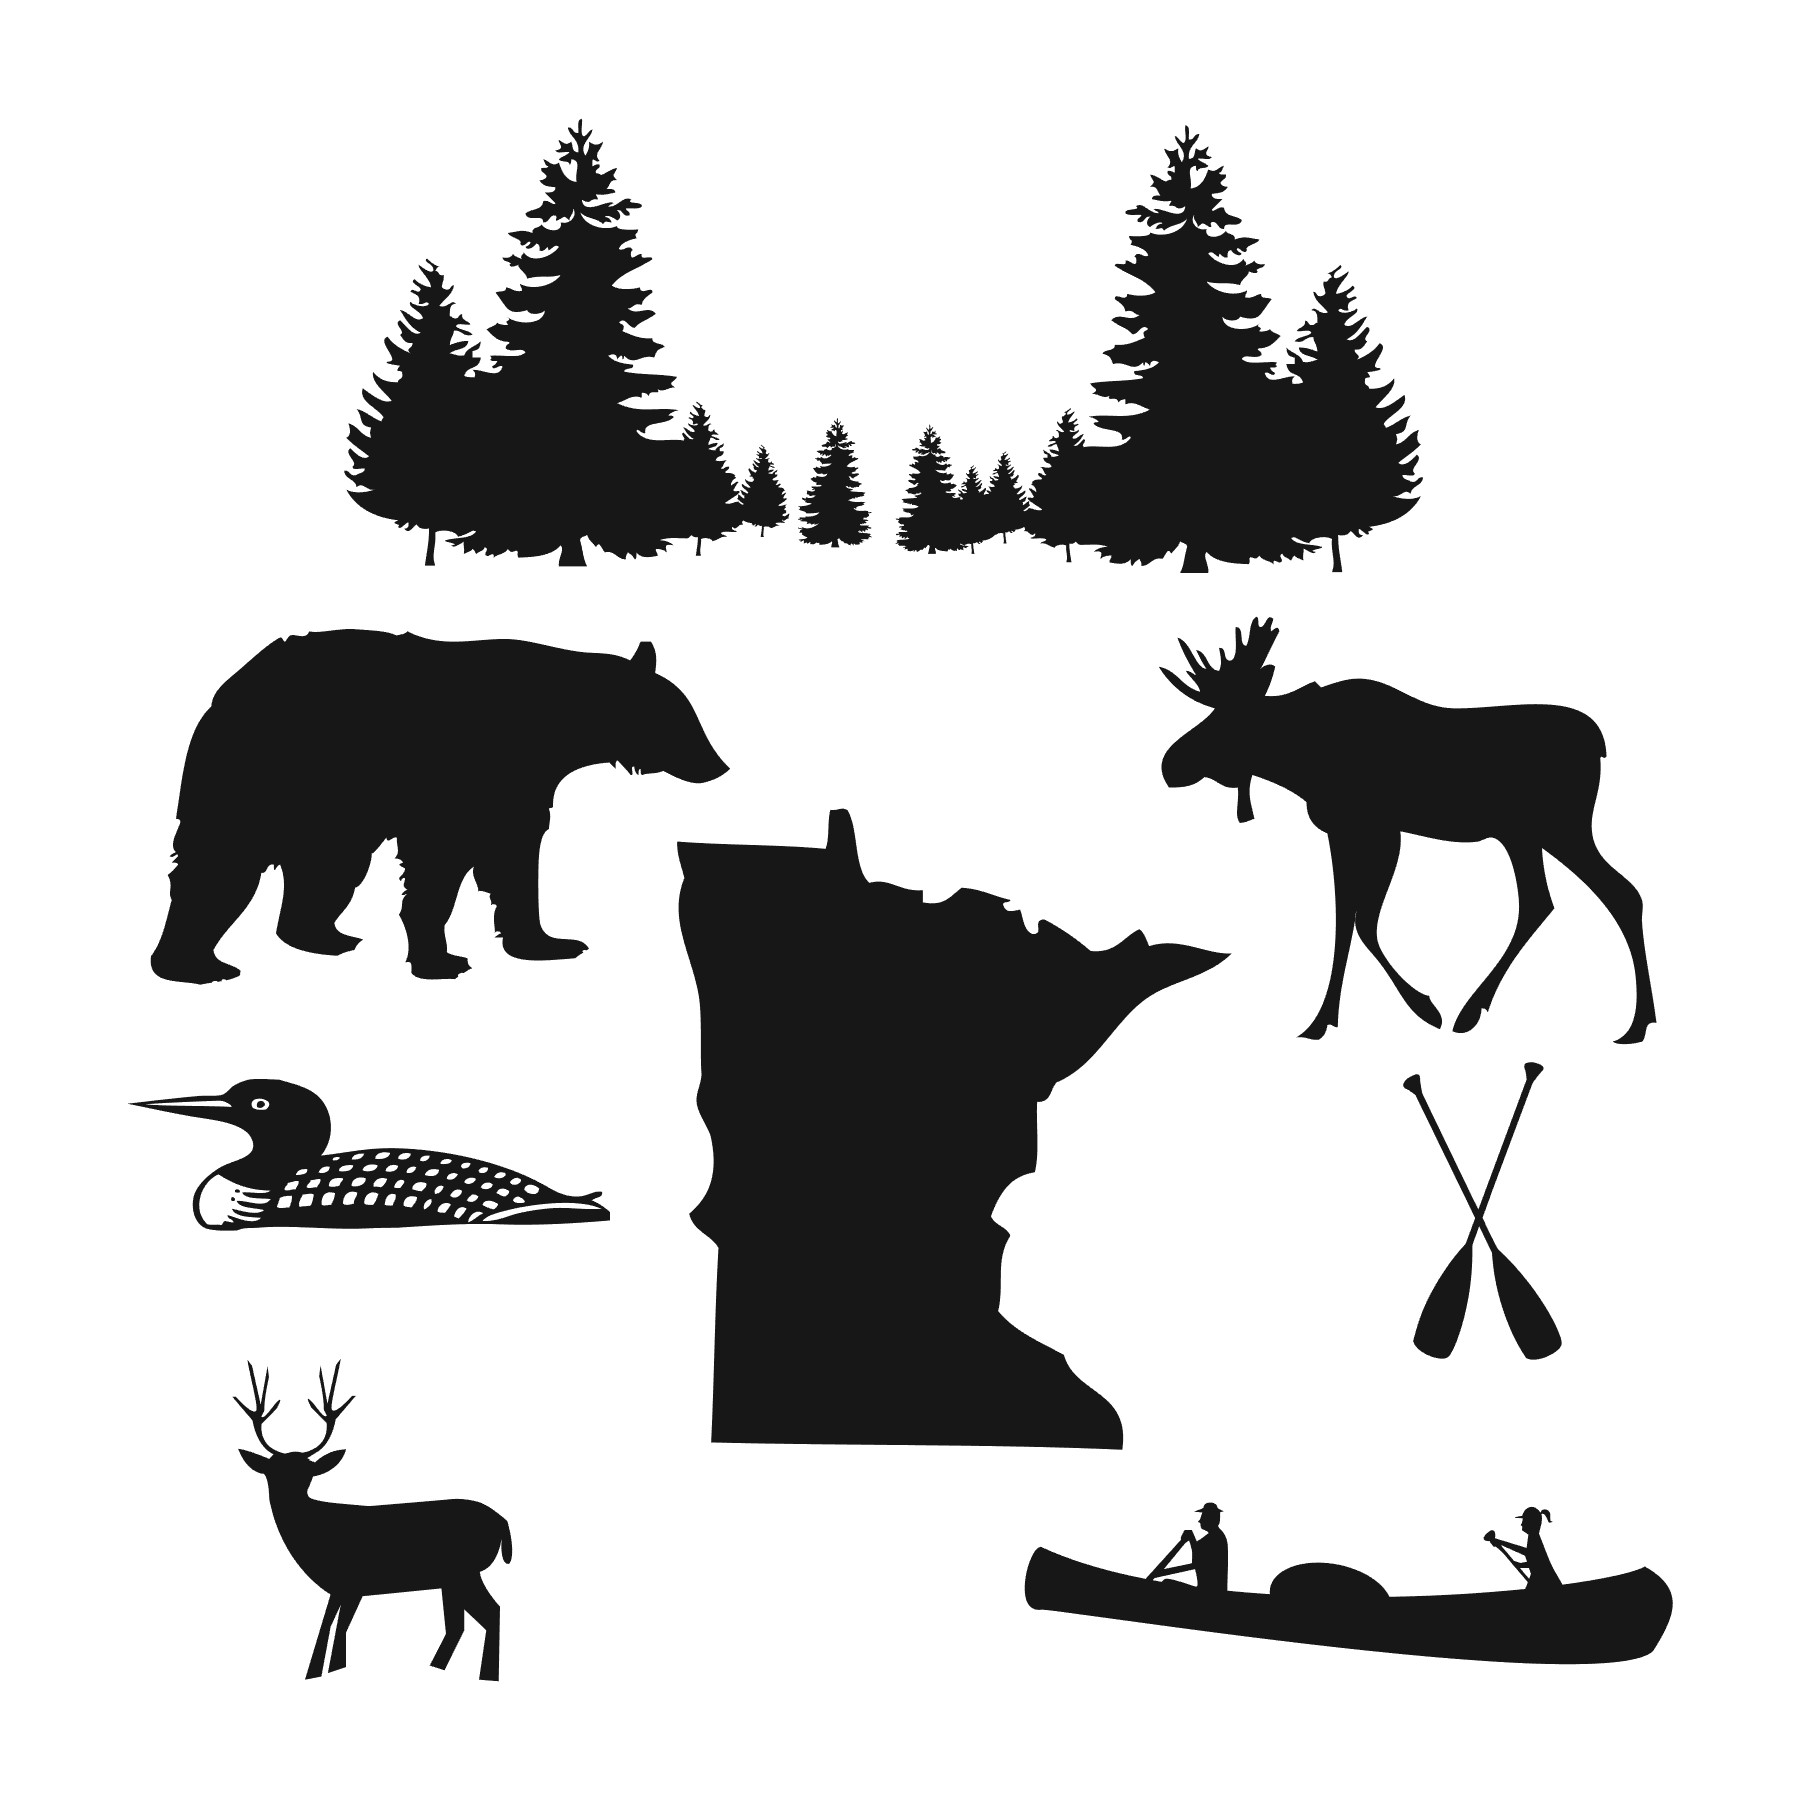 Wilderness clipart free clipart royalty free download Minnesota Wilderness clip art clipart royalty free download